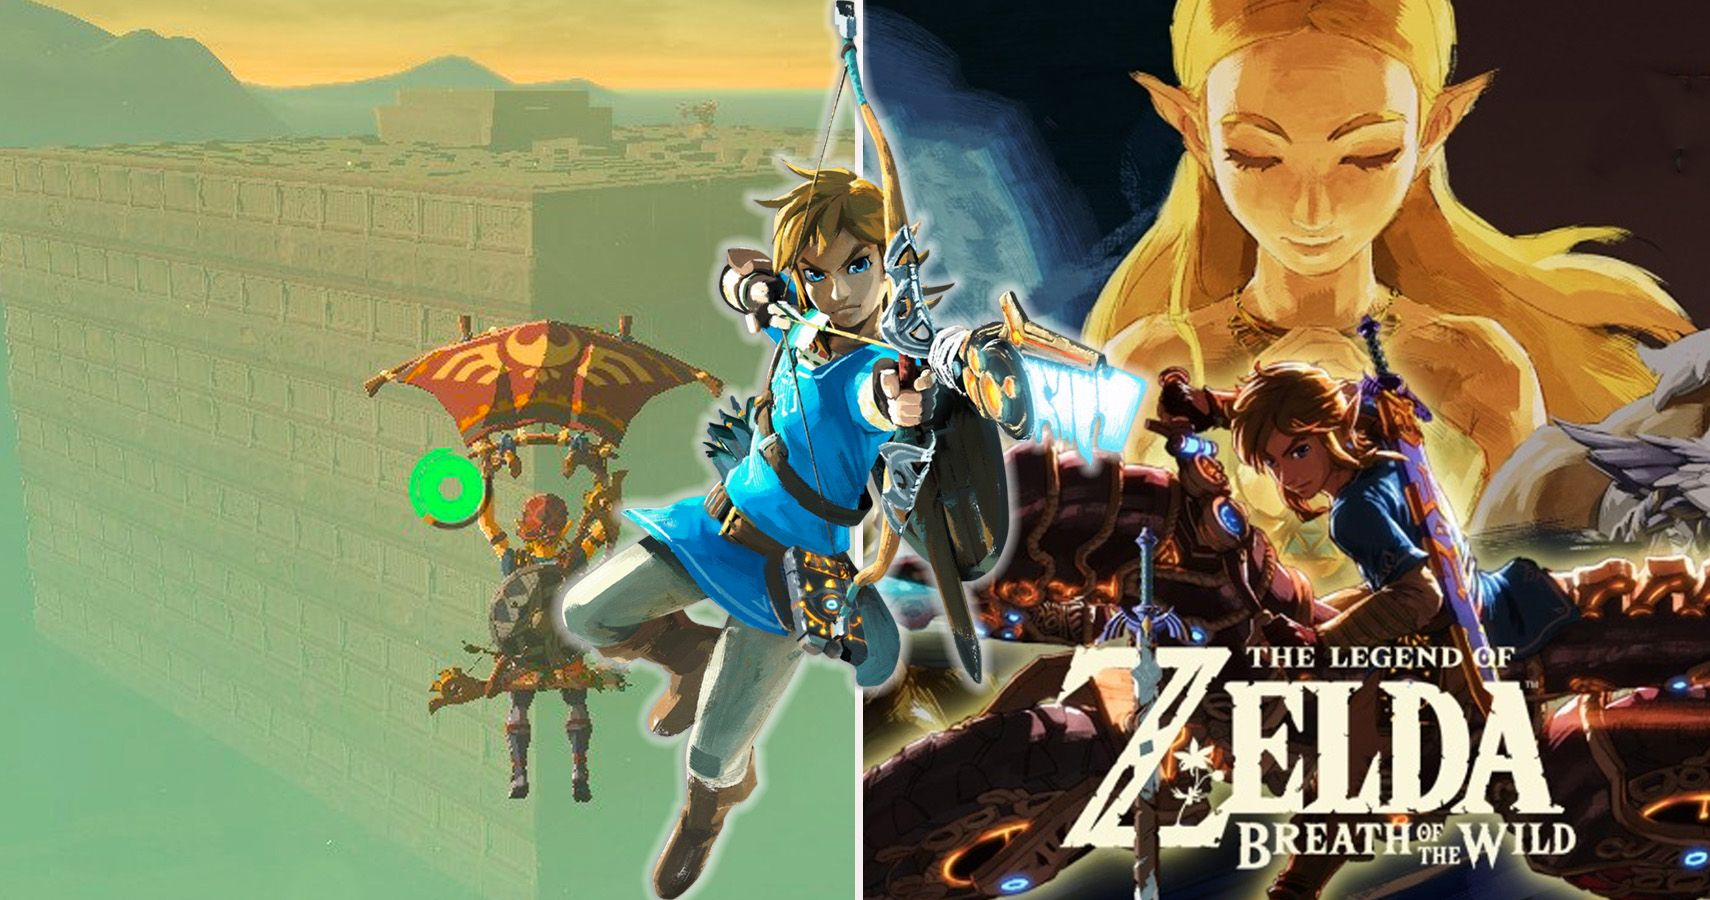 Zelda 15 Things To Do After Beating The Main Story In Breath Of The Wild